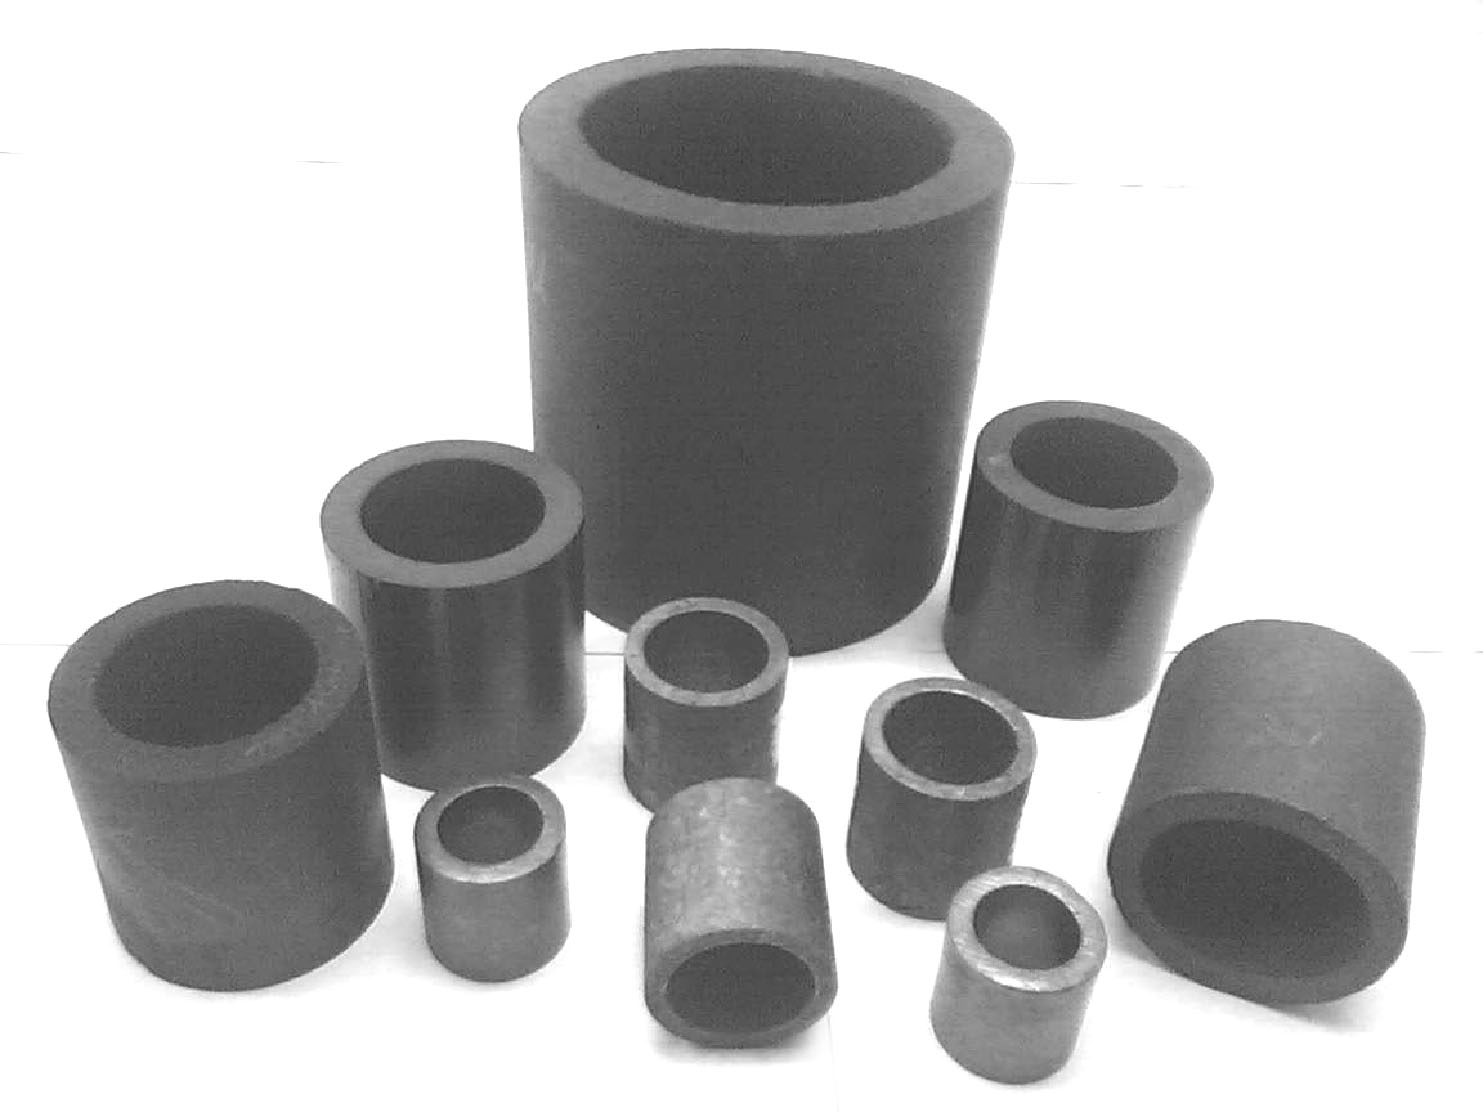 Carbon & Graphite Raschig Rings, Tower Packings